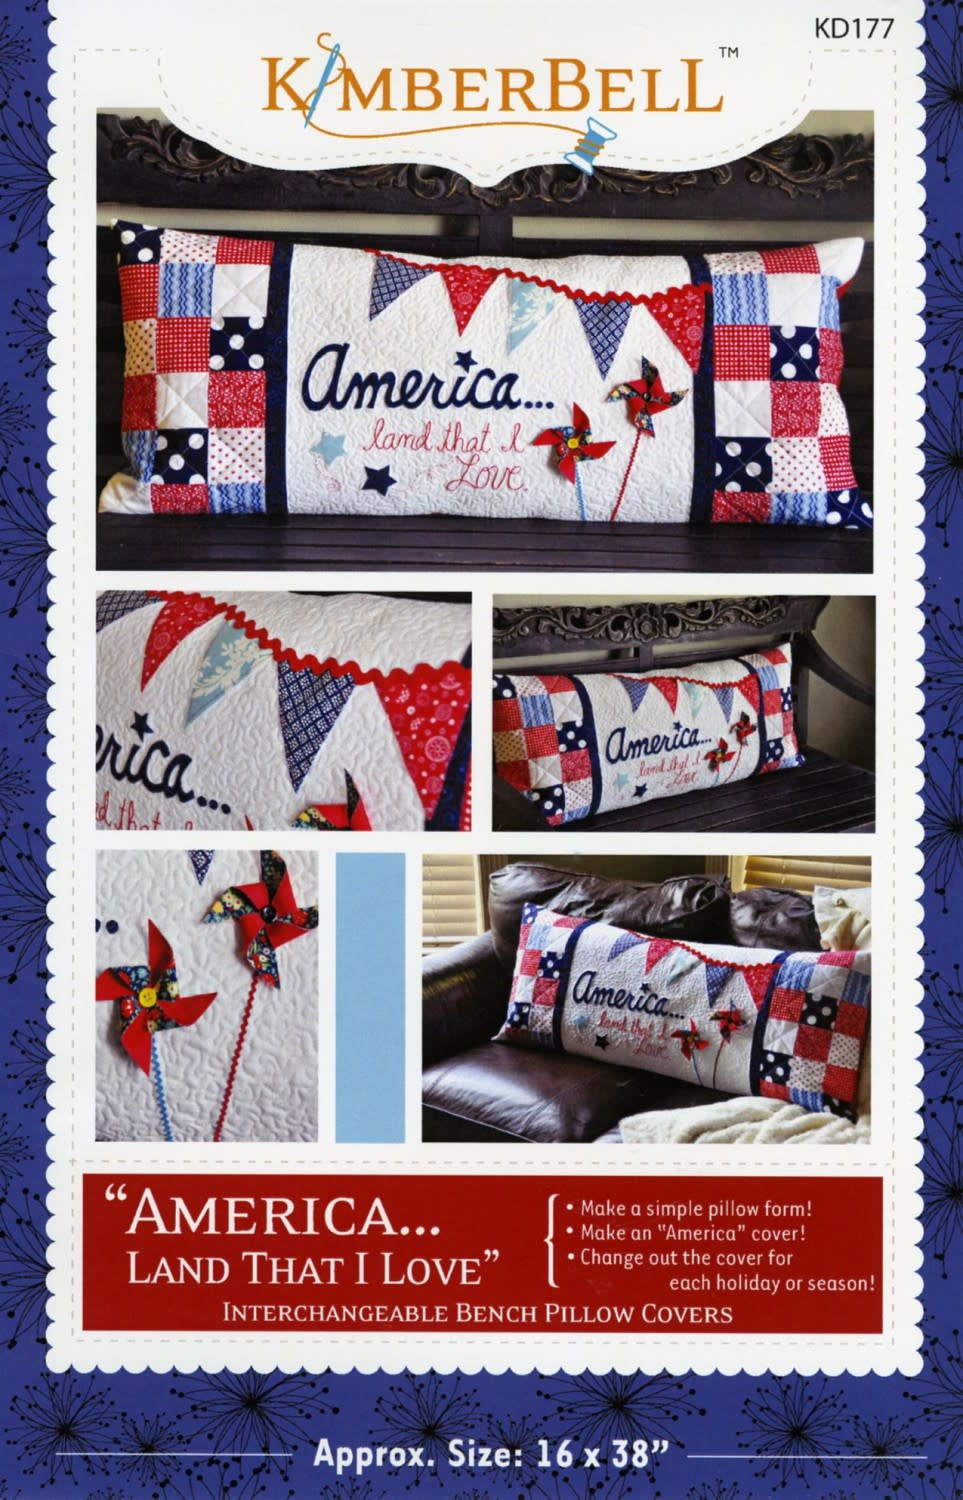 KIMBERBELL DESIGNS America Land That I Love Bench Pillow Pattern